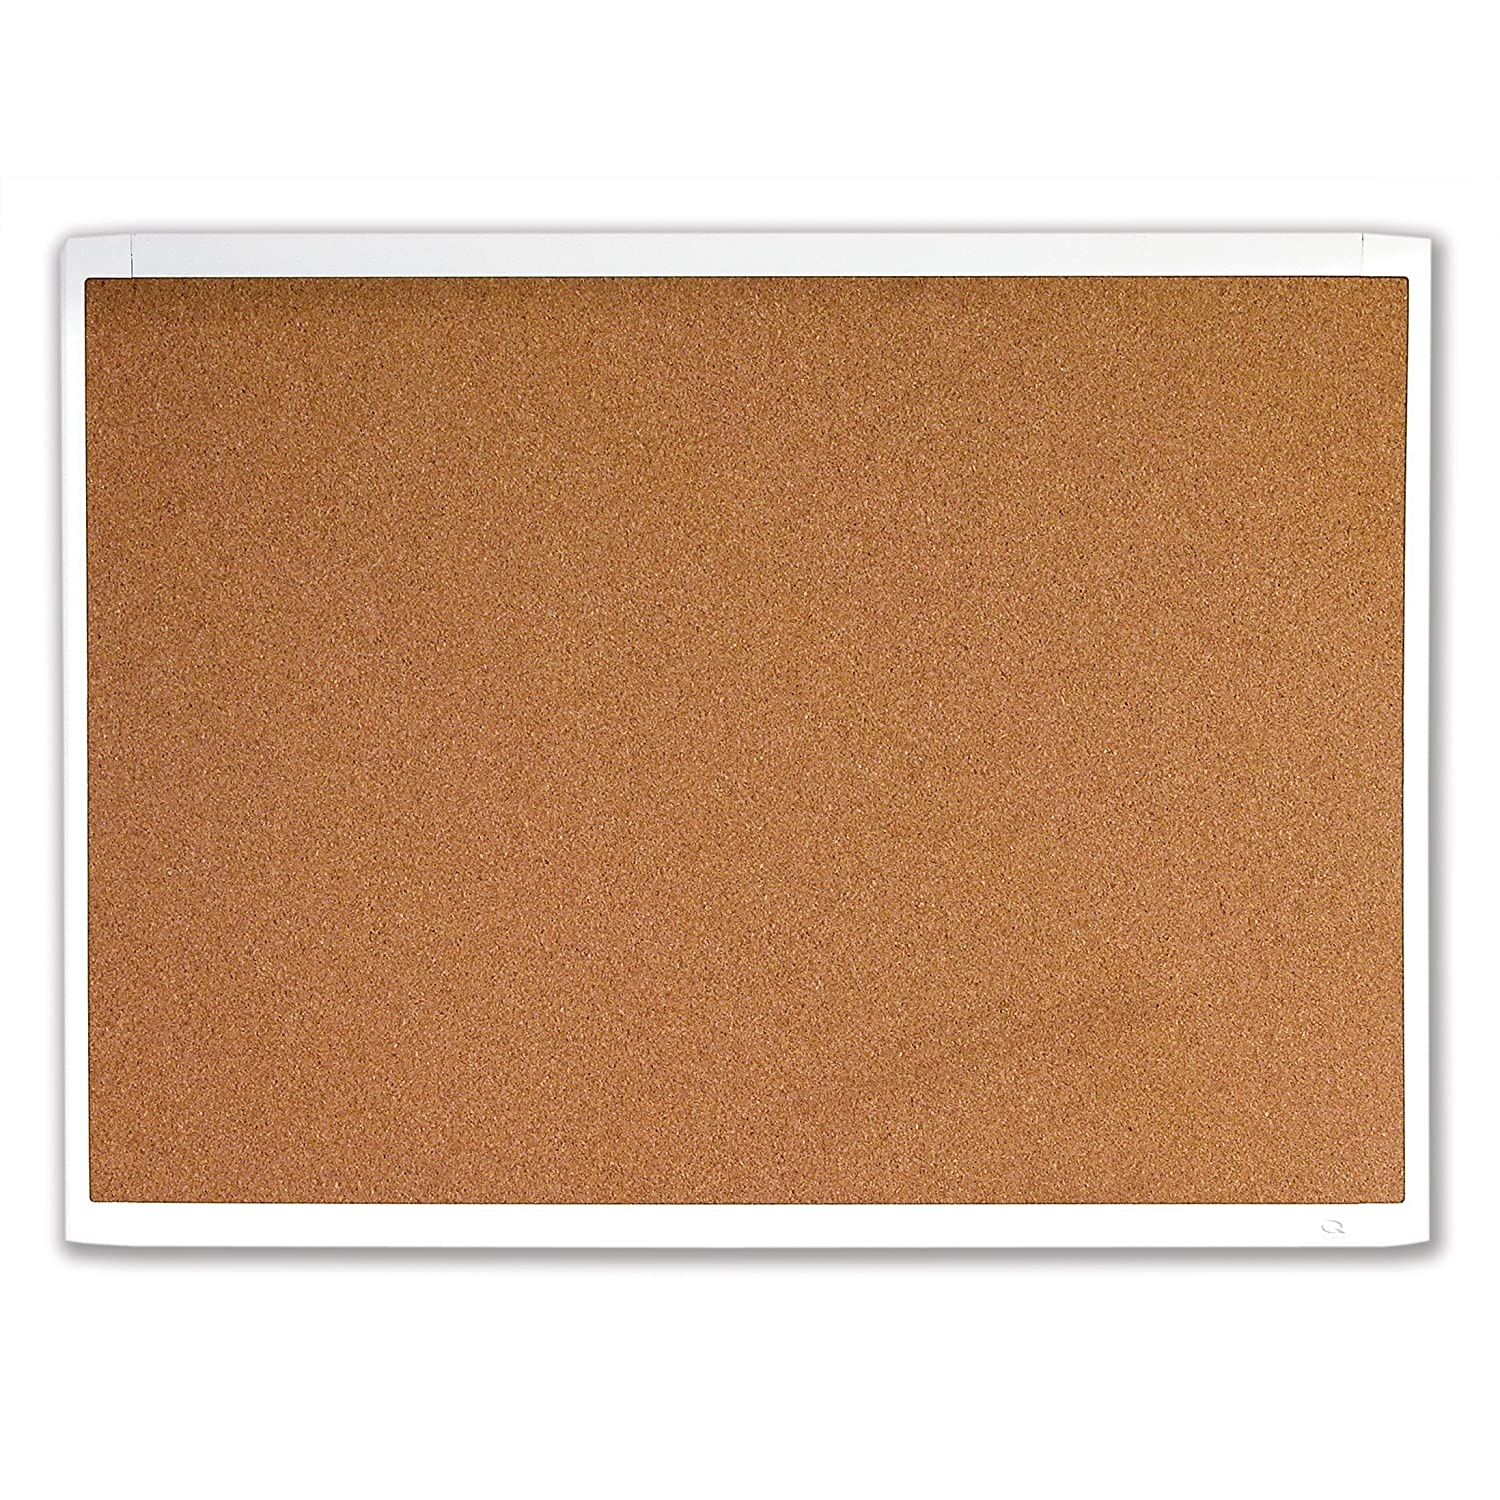 Cork Bulletin Board Amazoncom Quartet Magnetic Cork Bulletin Board White Plastic